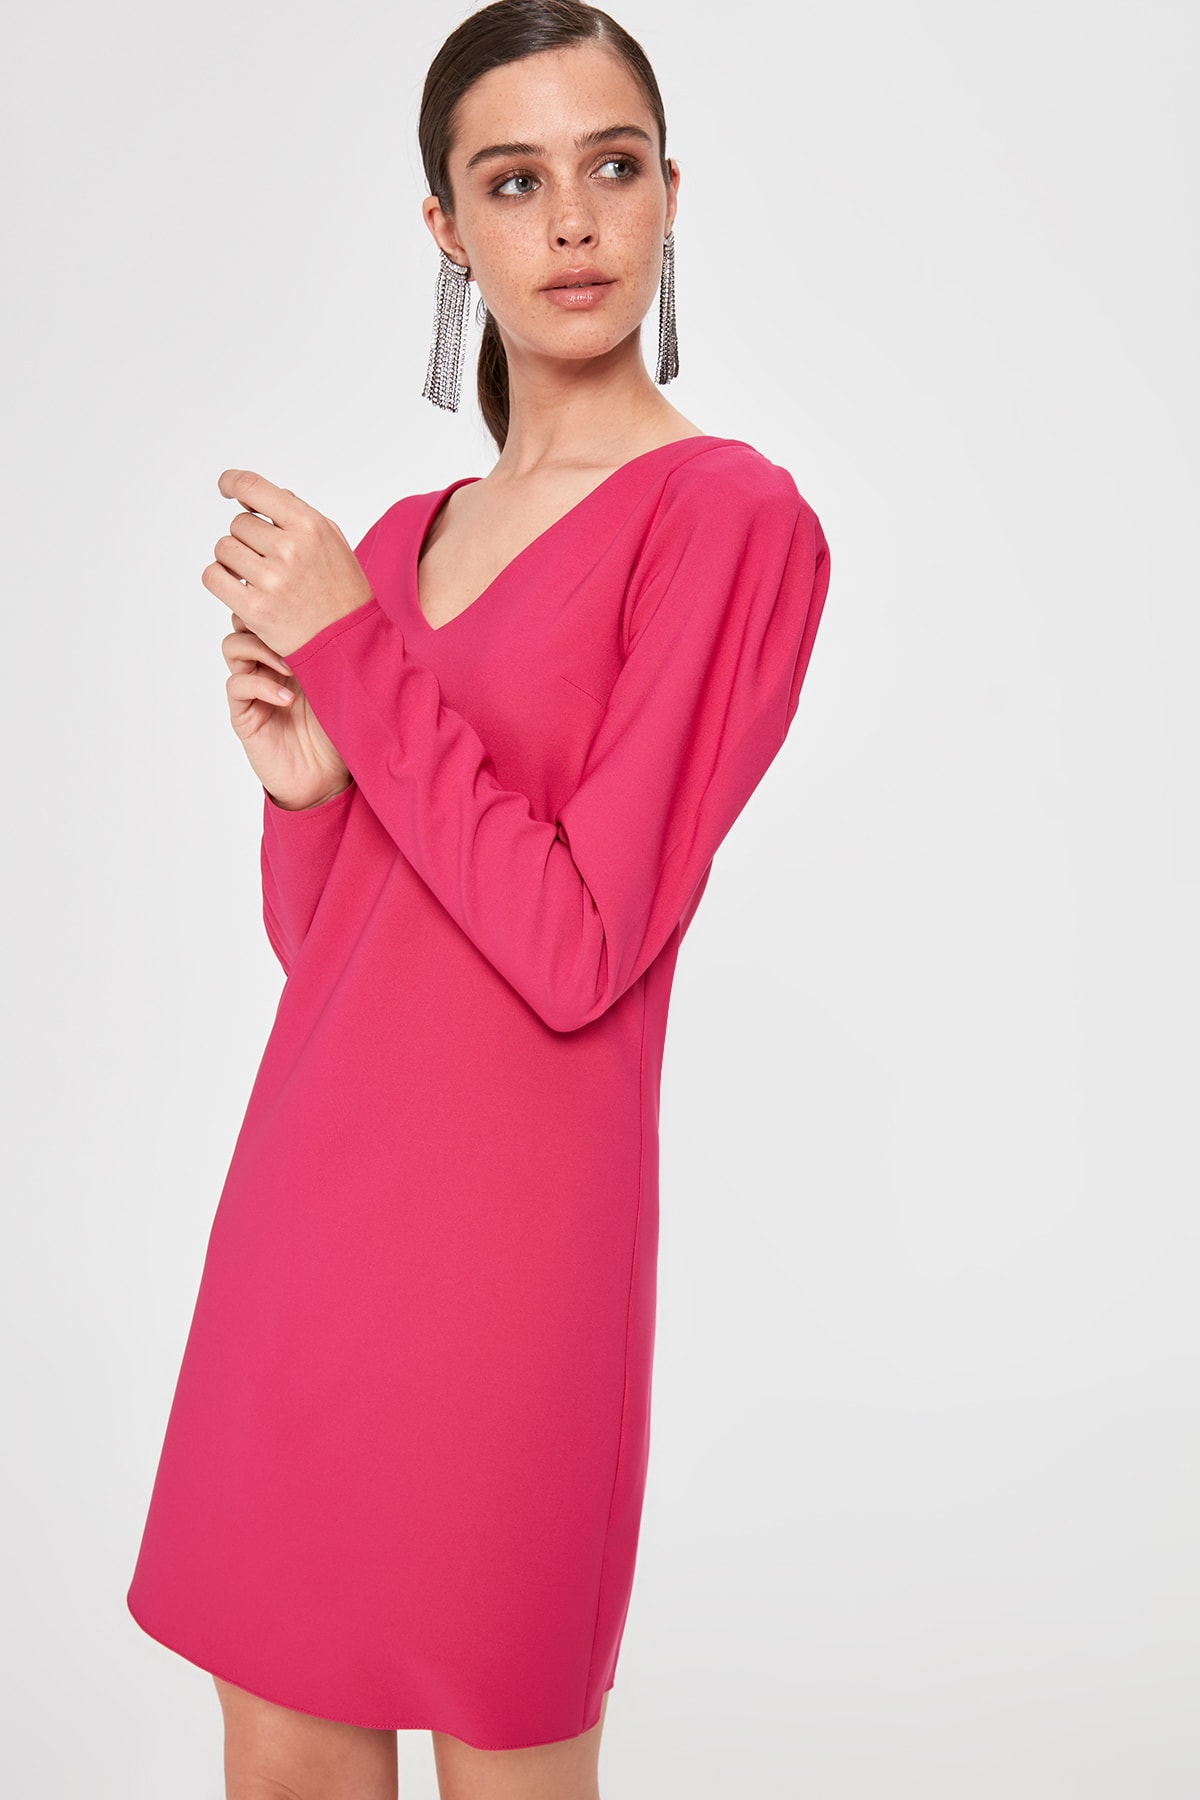 Trendyol Sleeve Detail Dress TPRAW20EL2173